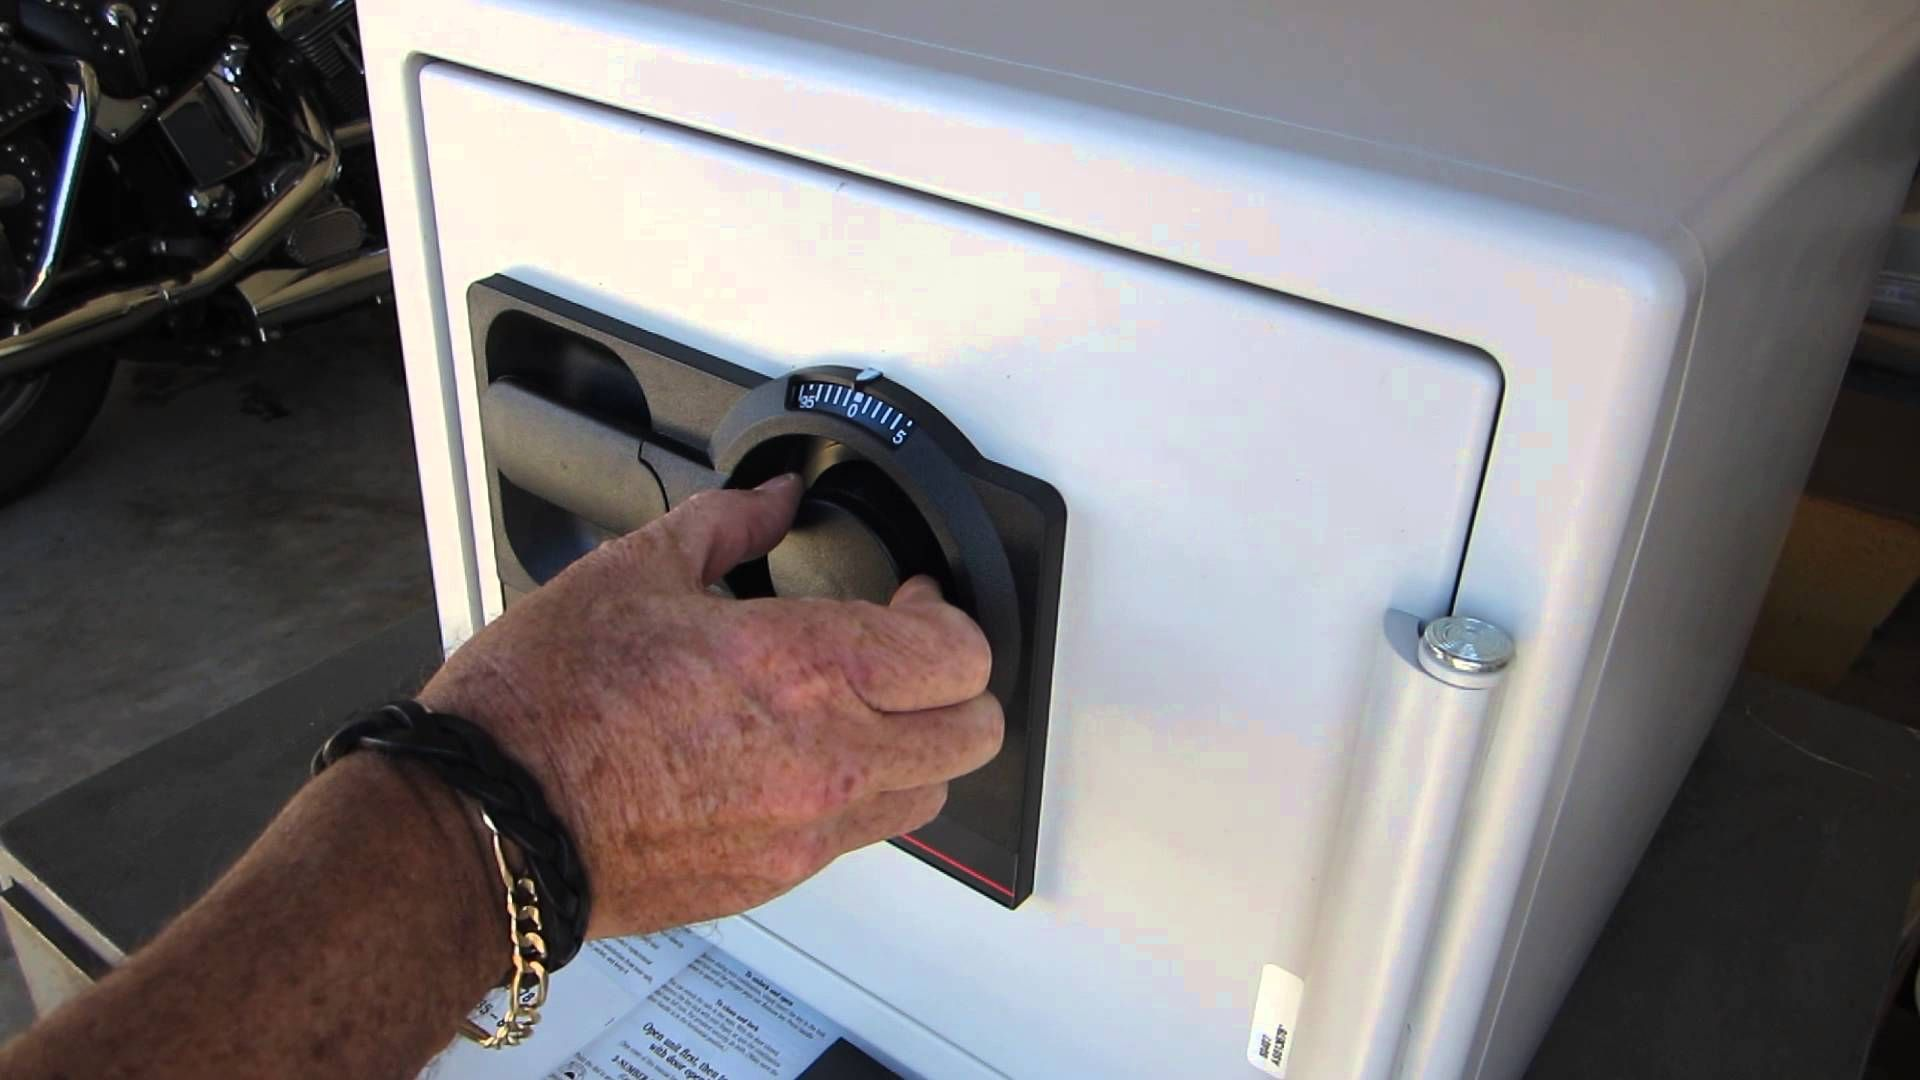 How to open sentry safe 3 number dial combination lock